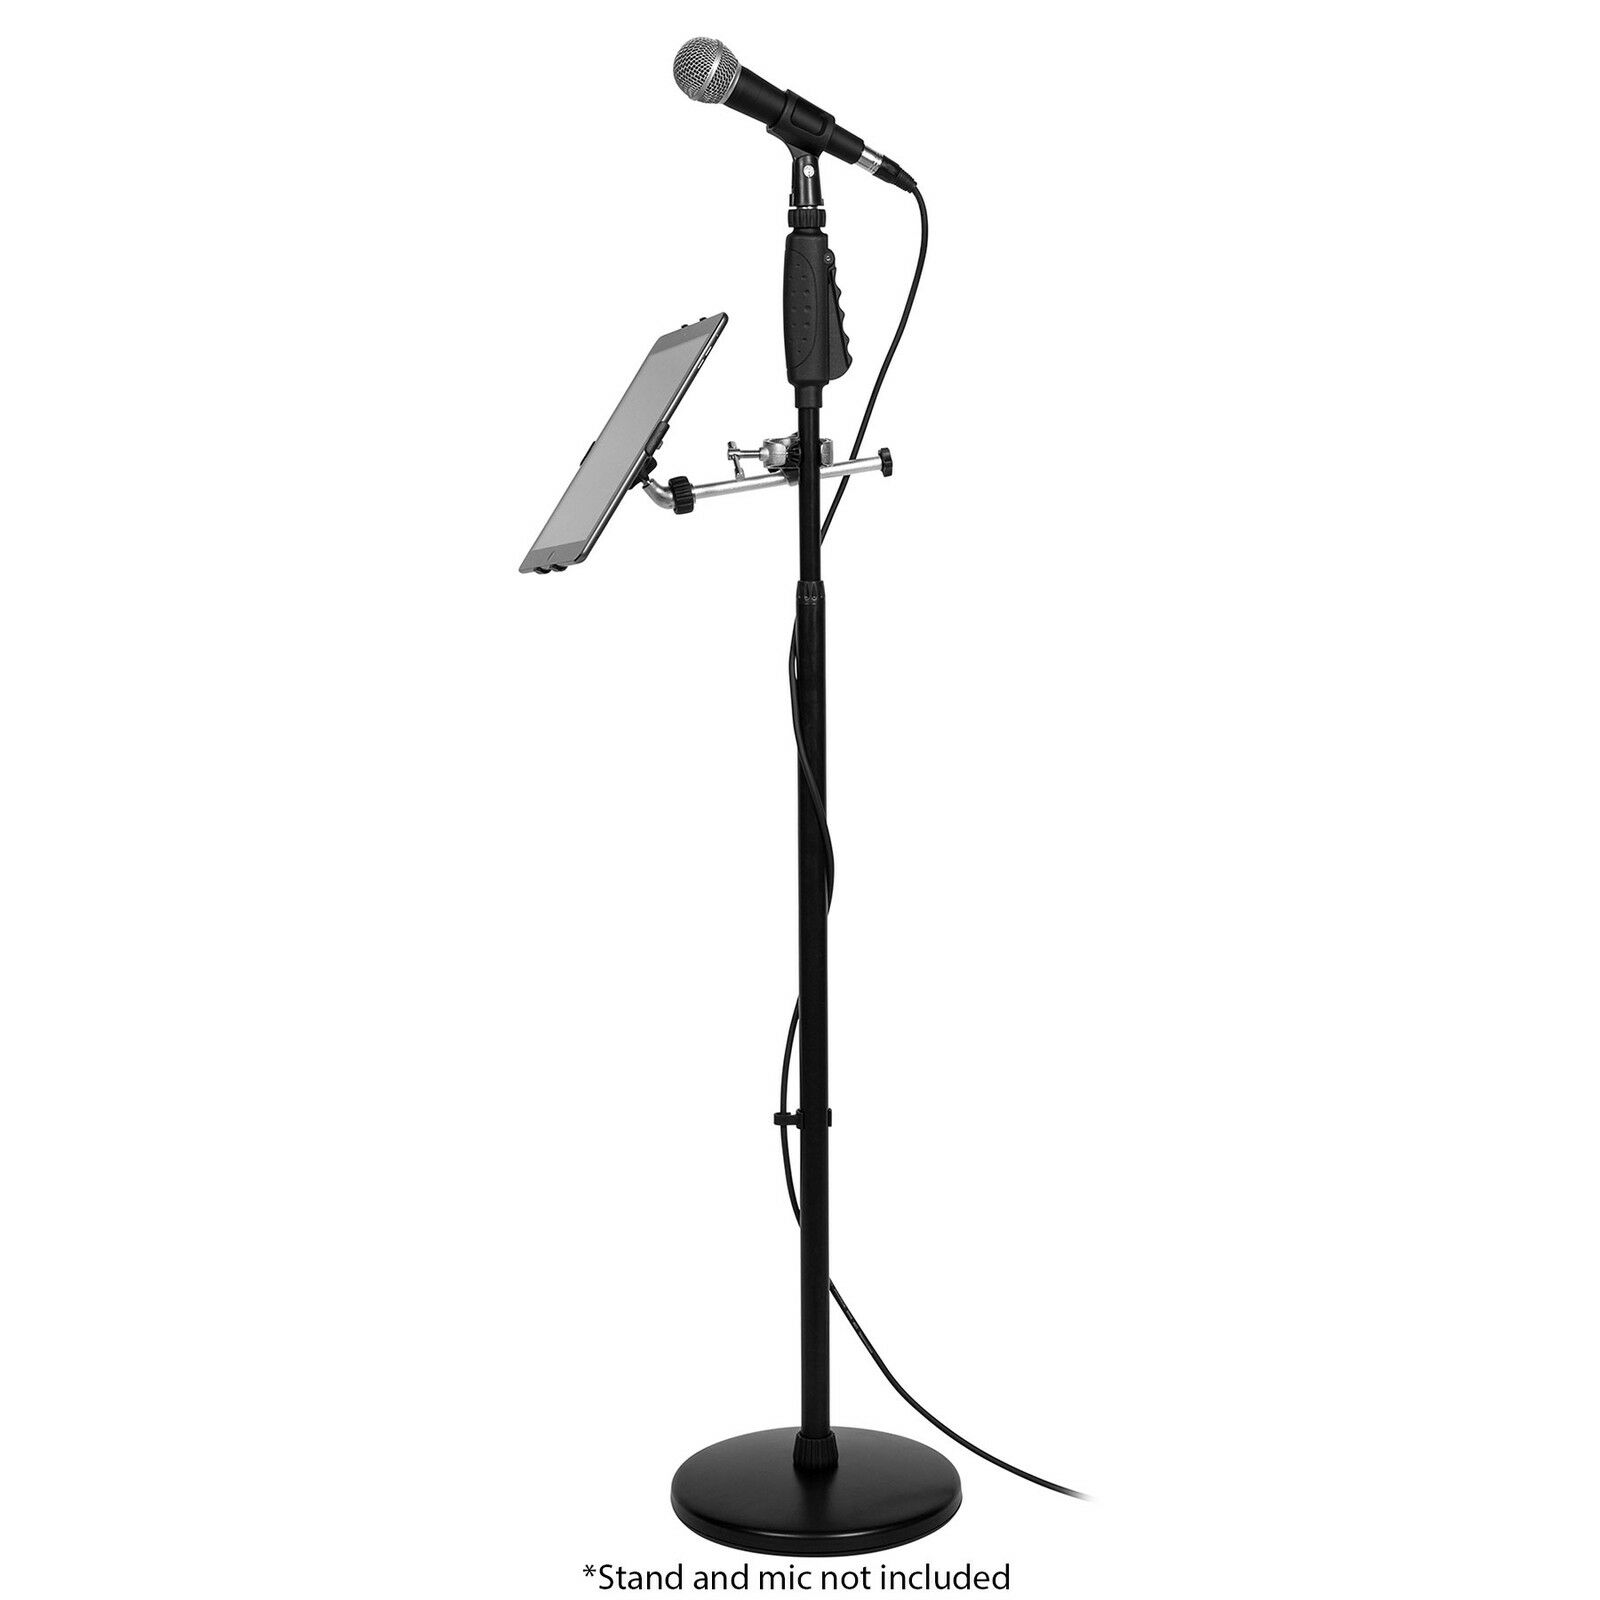 talent iclaw mic or music stand holder for apple ipad 844632096303 ebay. Black Bedroom Furniture Sets. Home Design Ideas